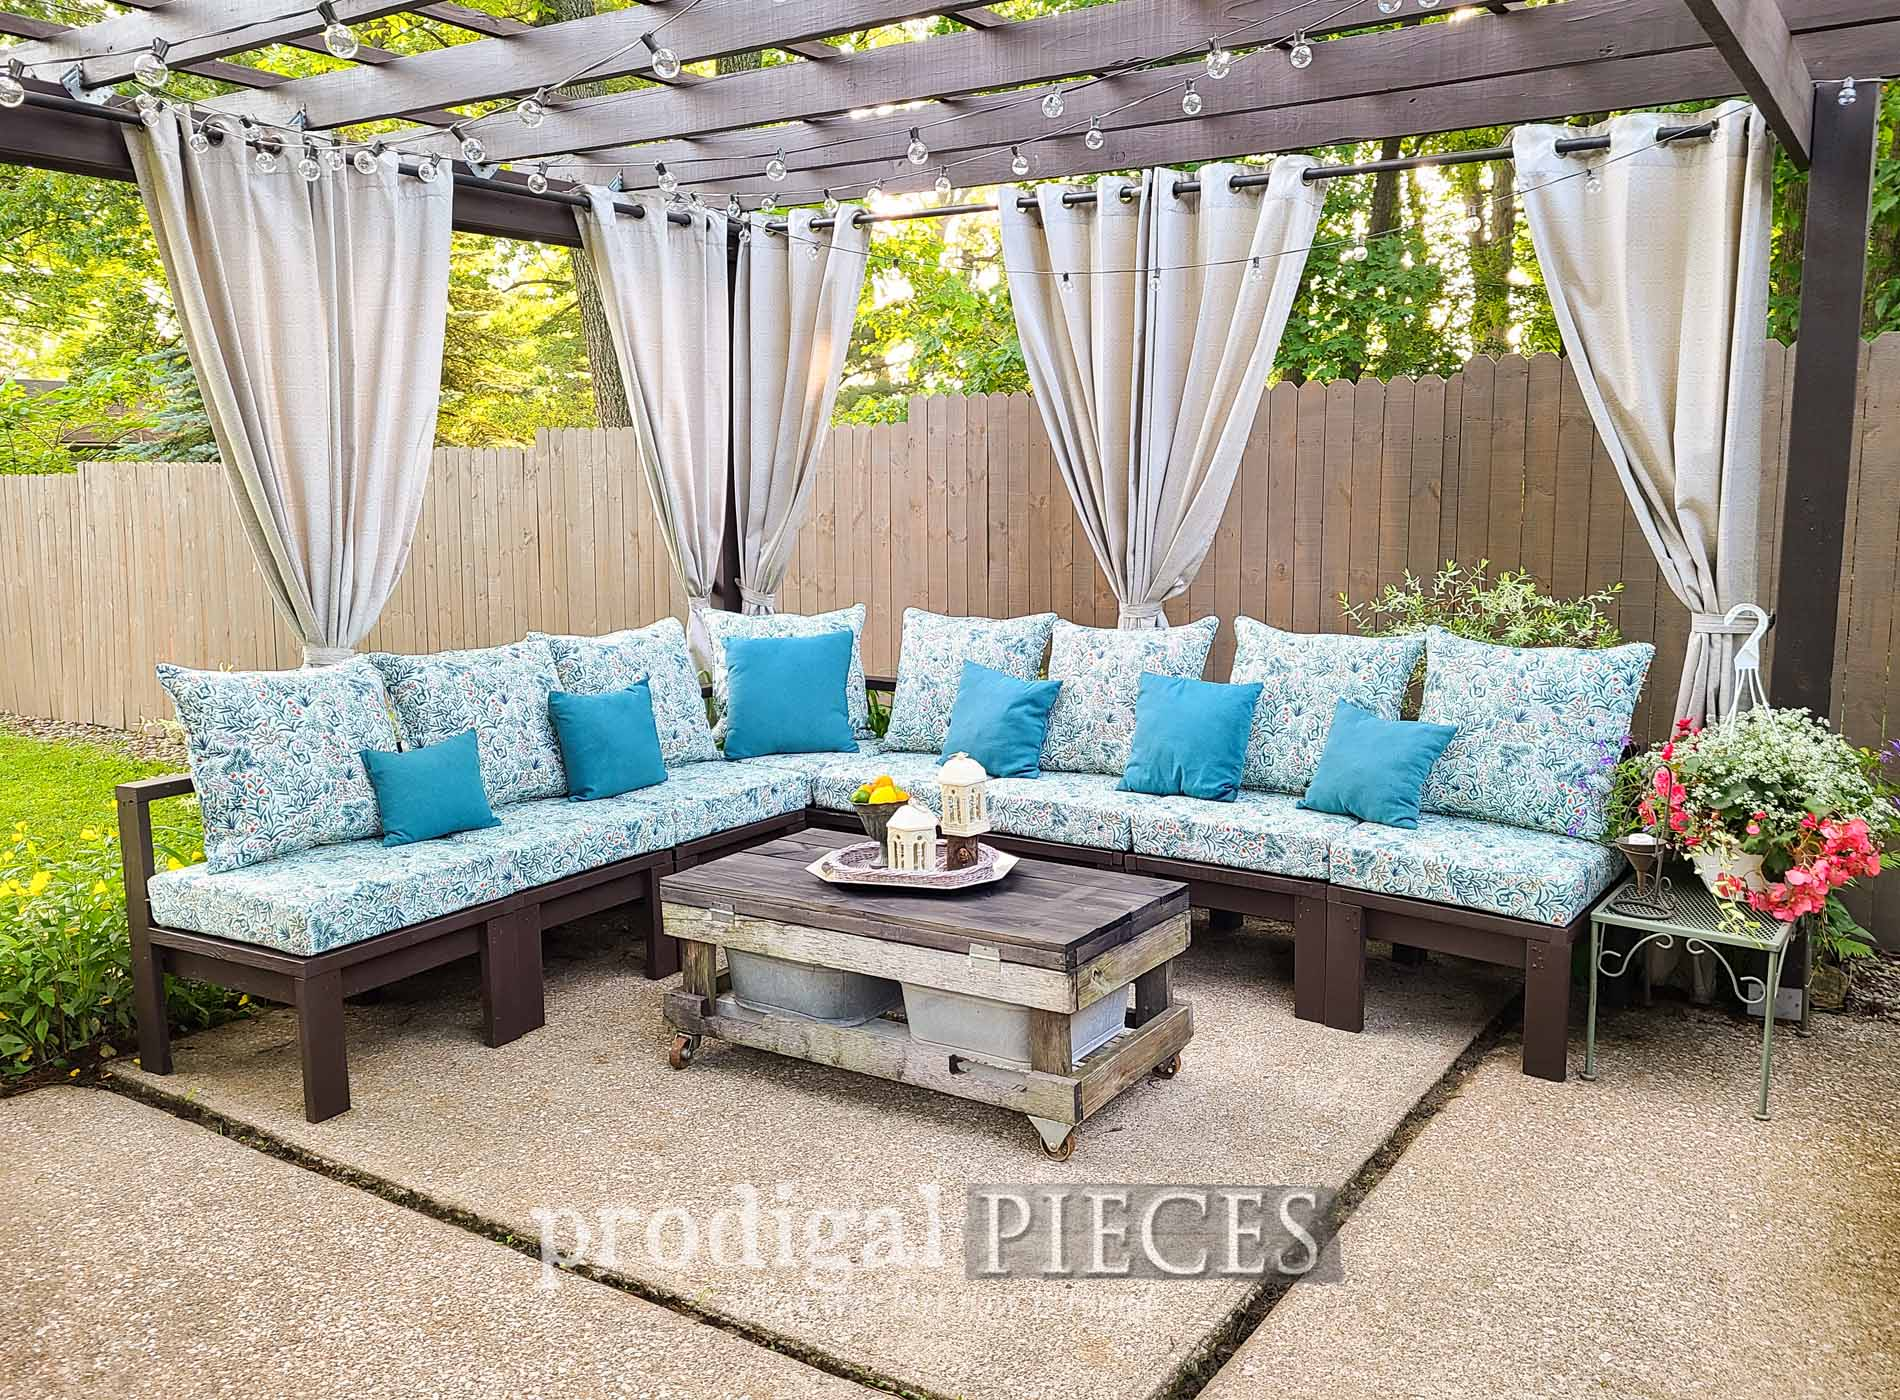 Featured DIY Patio Sectional Sofa by Prodigal Pieces | prodigalpieces.com #prodigalpieces #diy #buildplans #woodworking #patio #summer #free